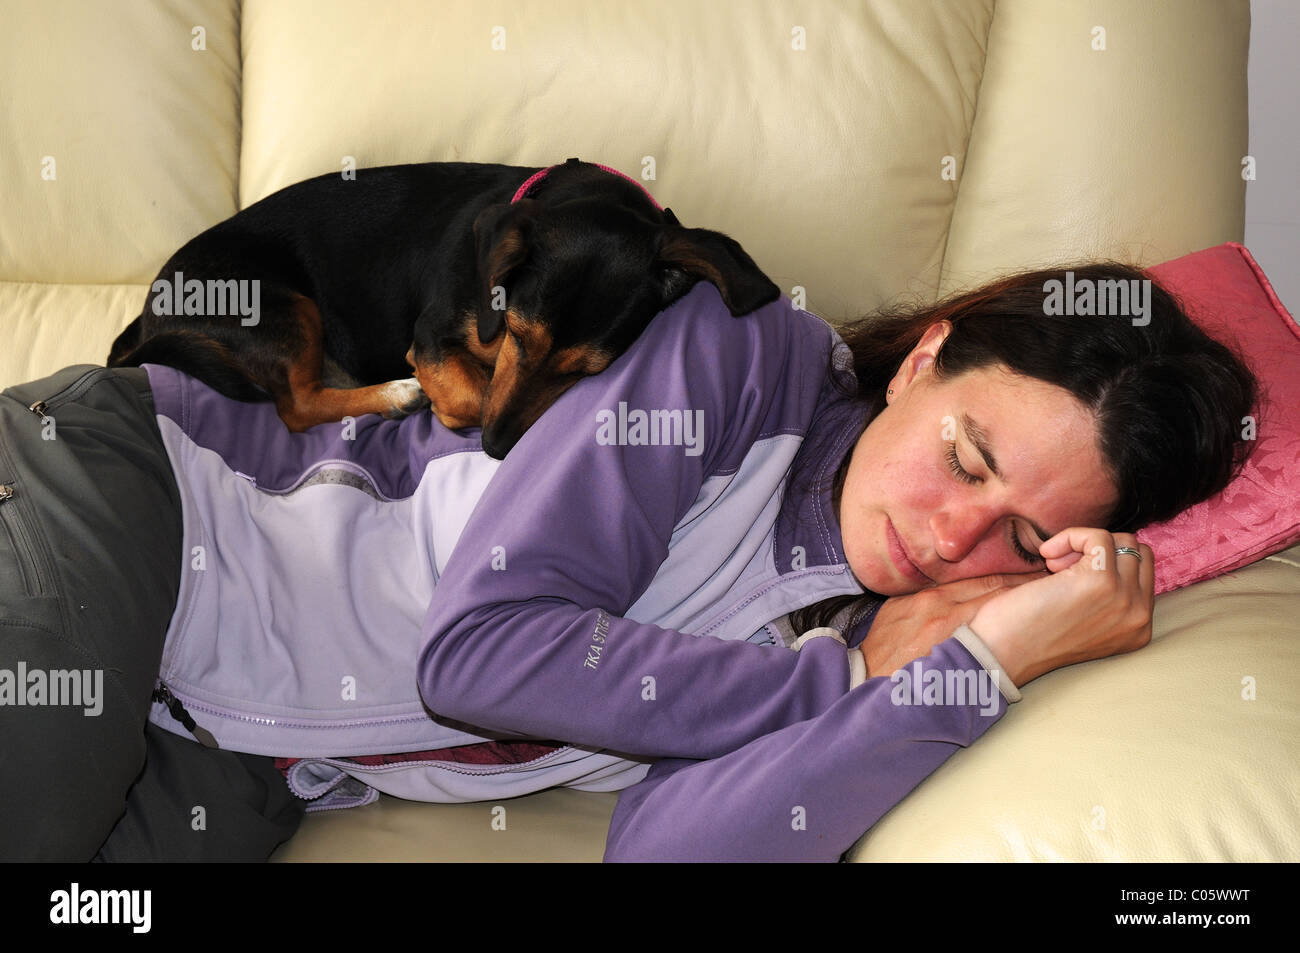 a-dog-curled-up-asleep-on-a-sleeping-woman-C05WWT.jpg